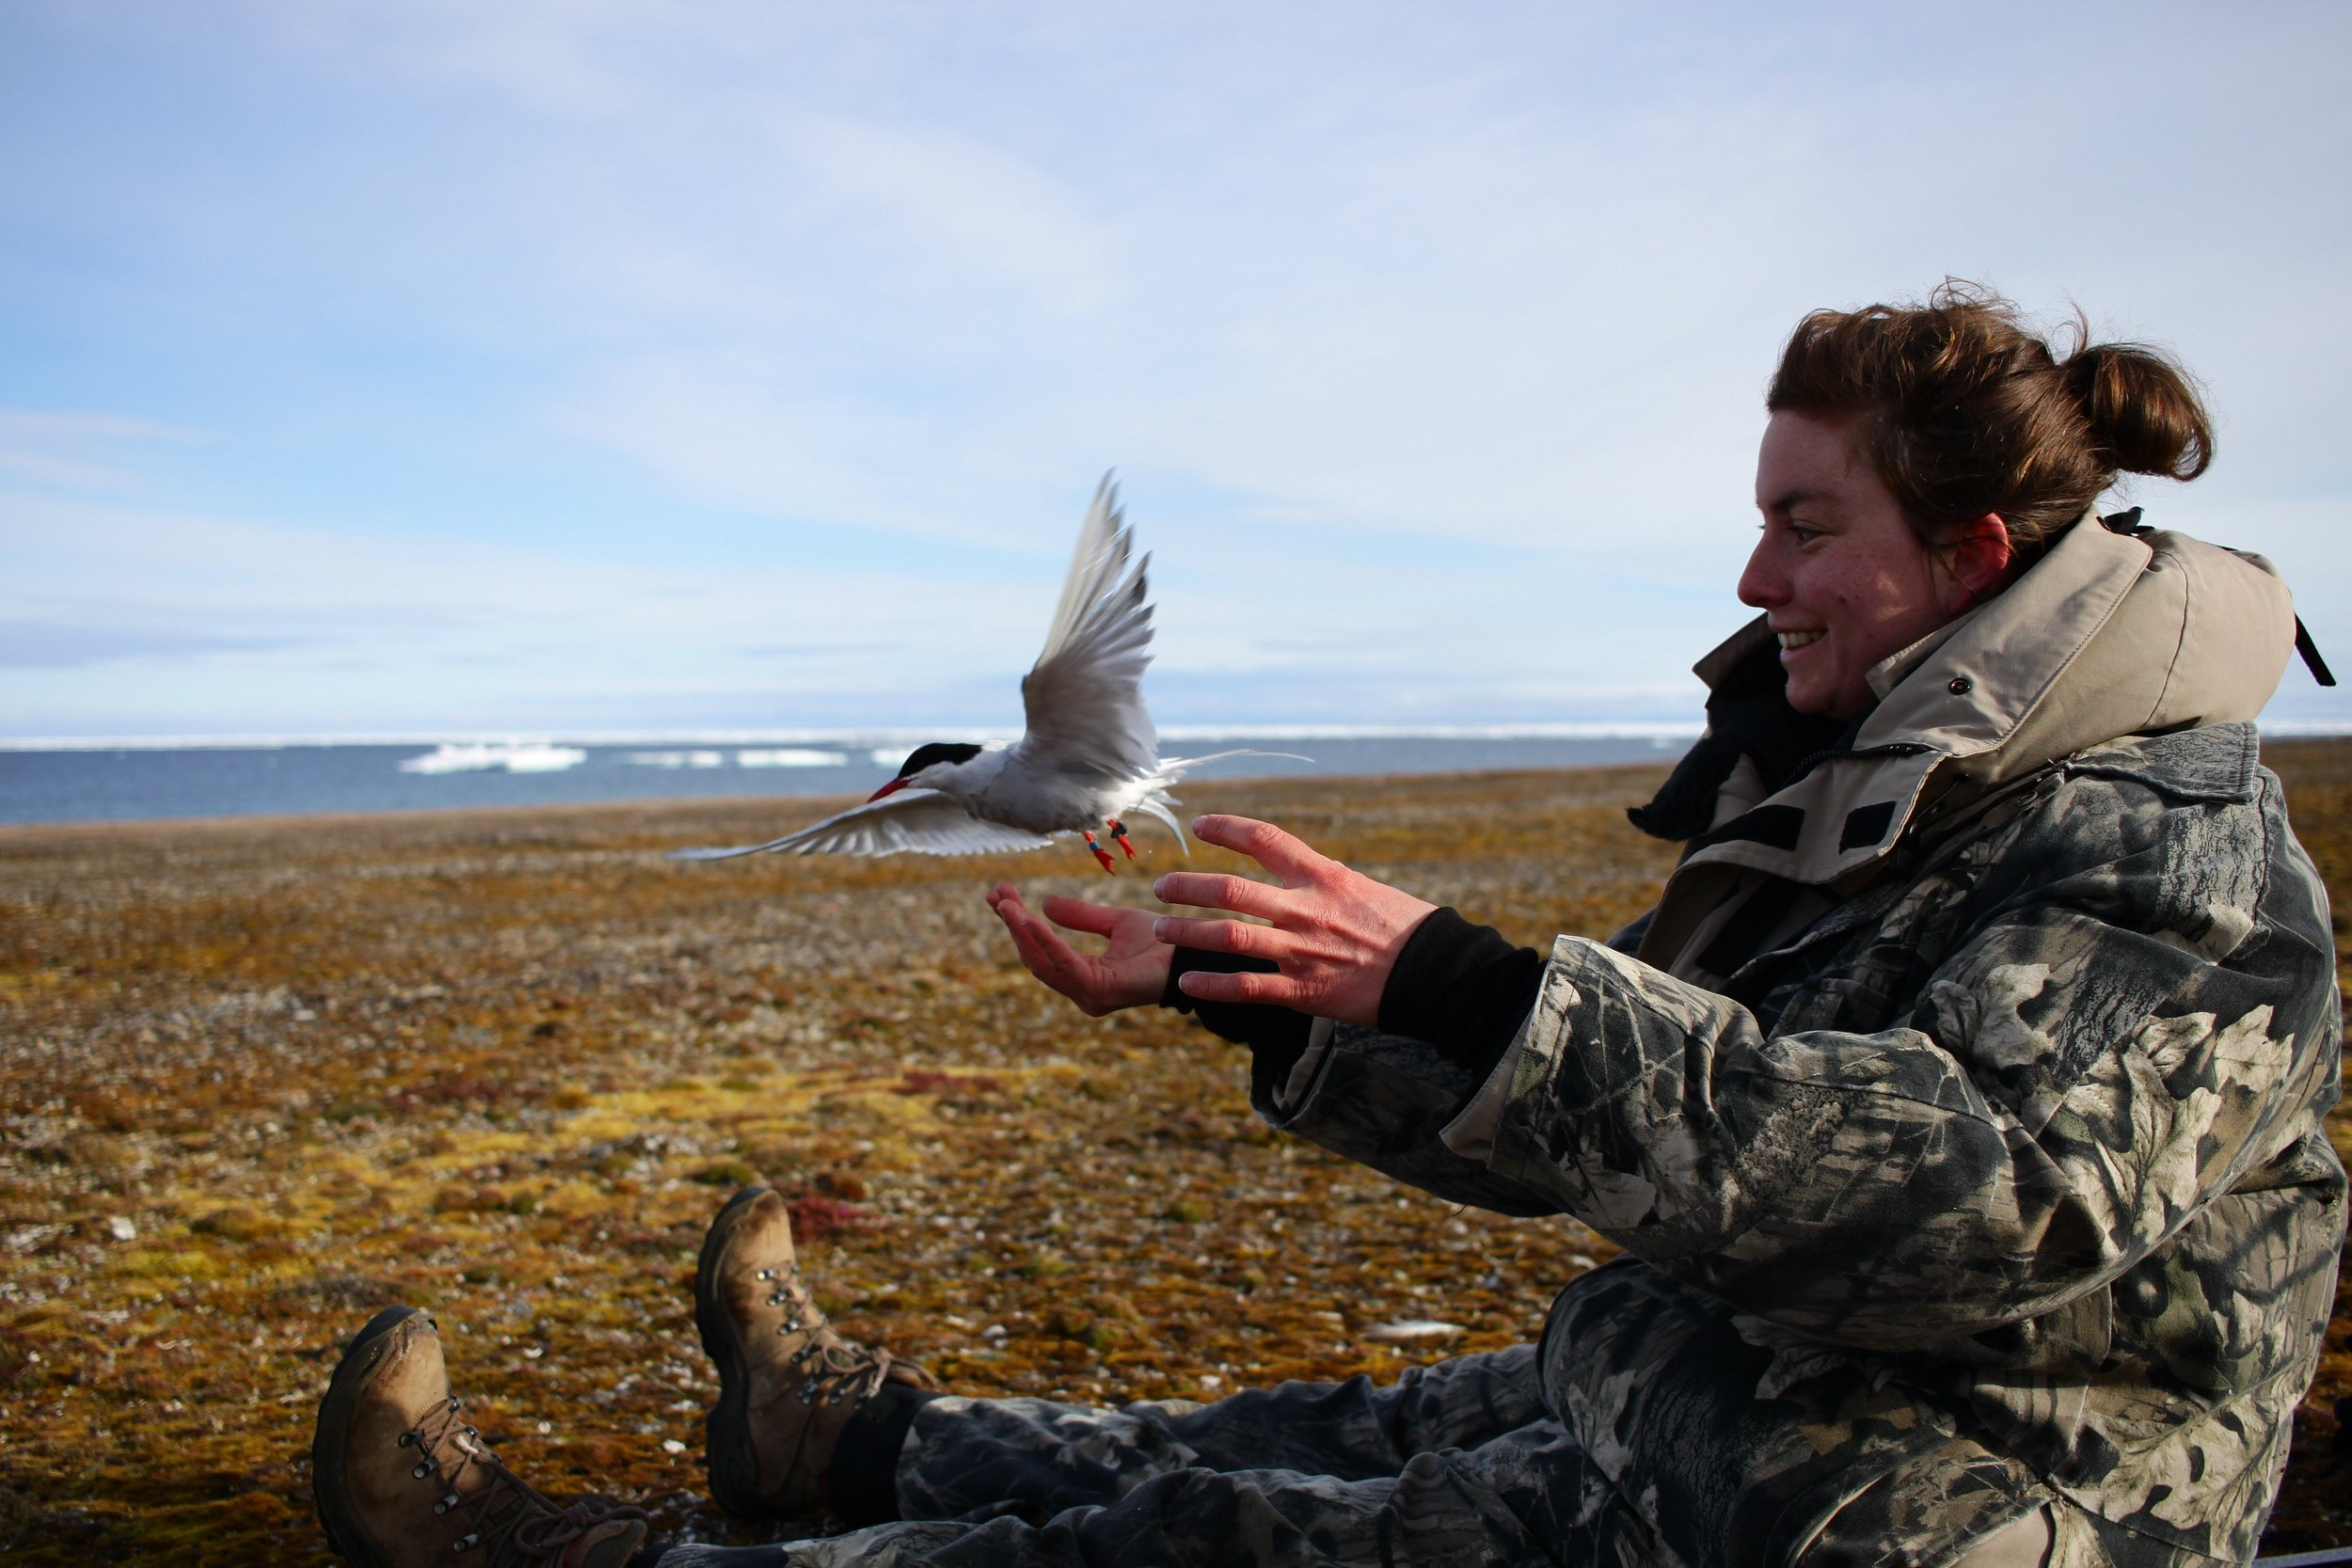 HAGRG biologist Isabeau Pratte releases a just-tagged tern on Nasaruvaalik Island in the Canadian High Arctic. You can see the small black tag attached to the bird's left leg.